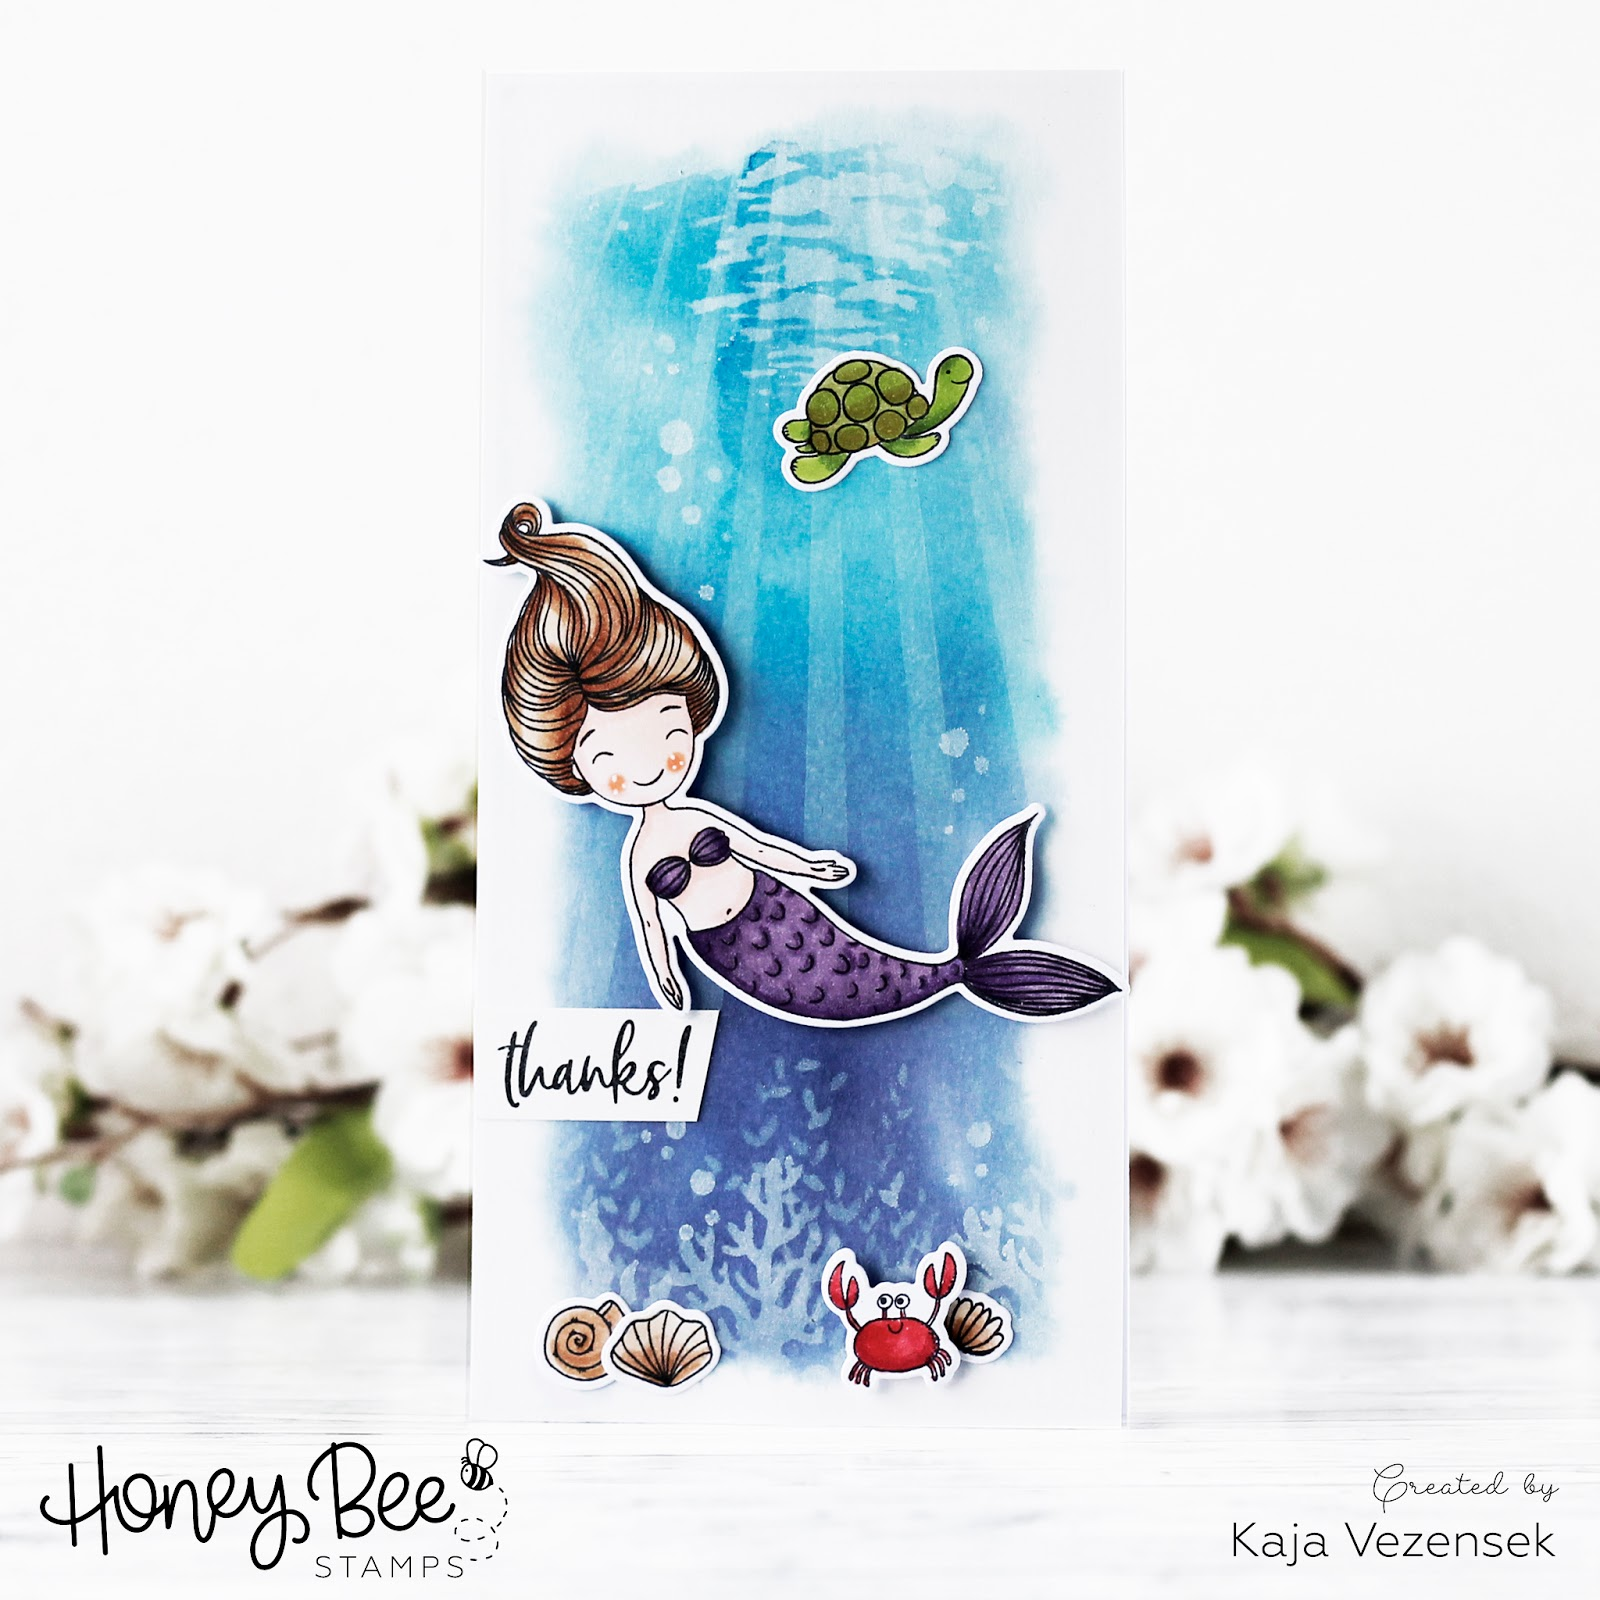 Stenciled ocean scene | HONEY BEE